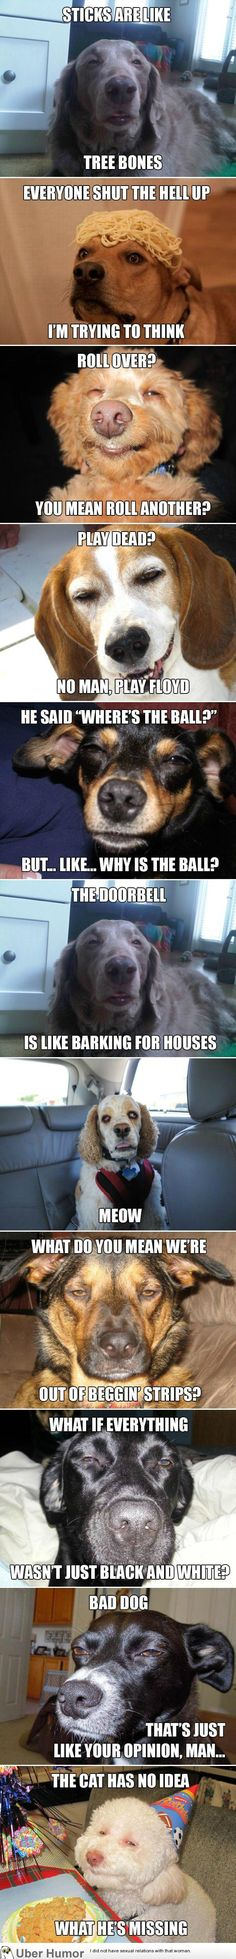 Stoned dogs